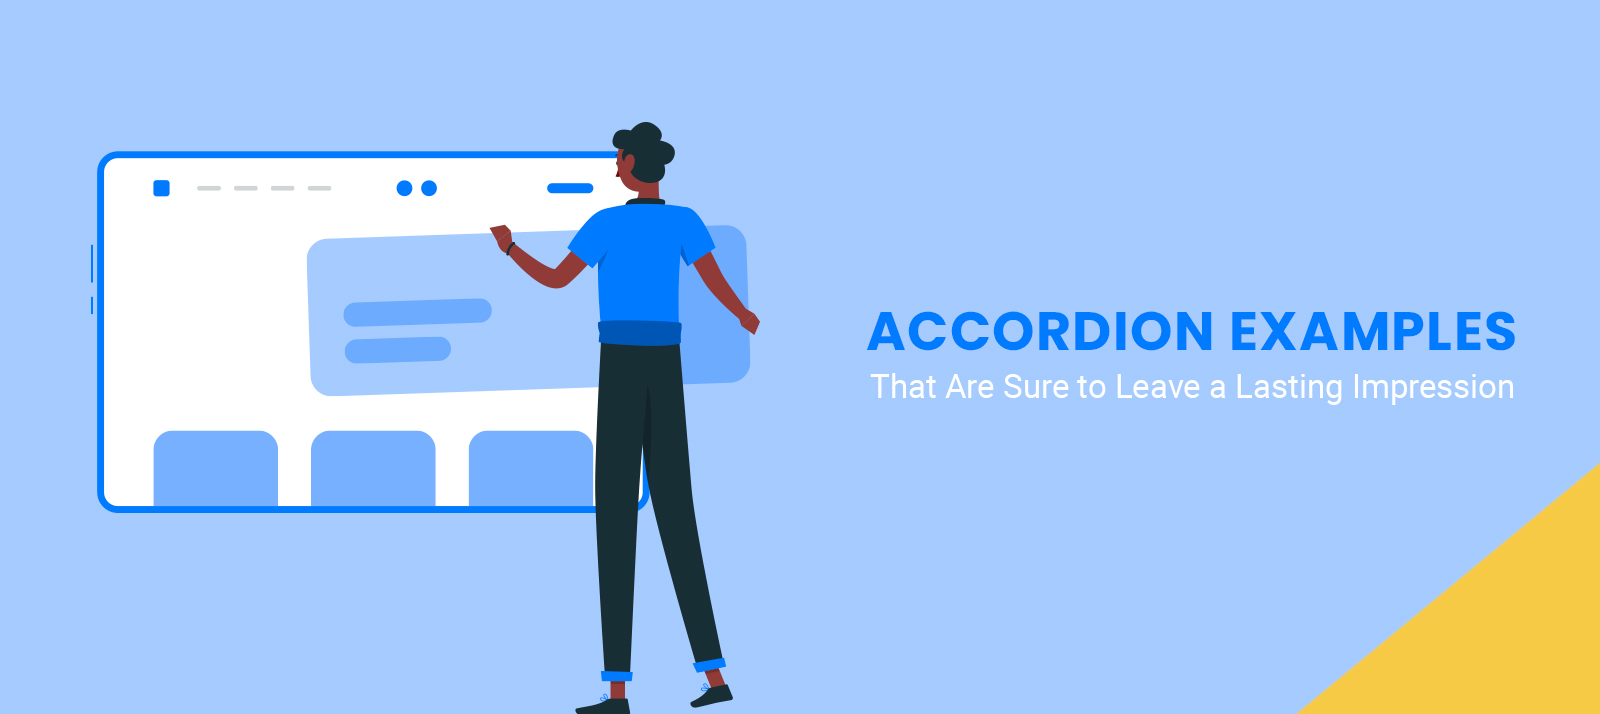 10 Creative Bootstrap Accordion Examples That Are Sure to Leave a Lasting Impression